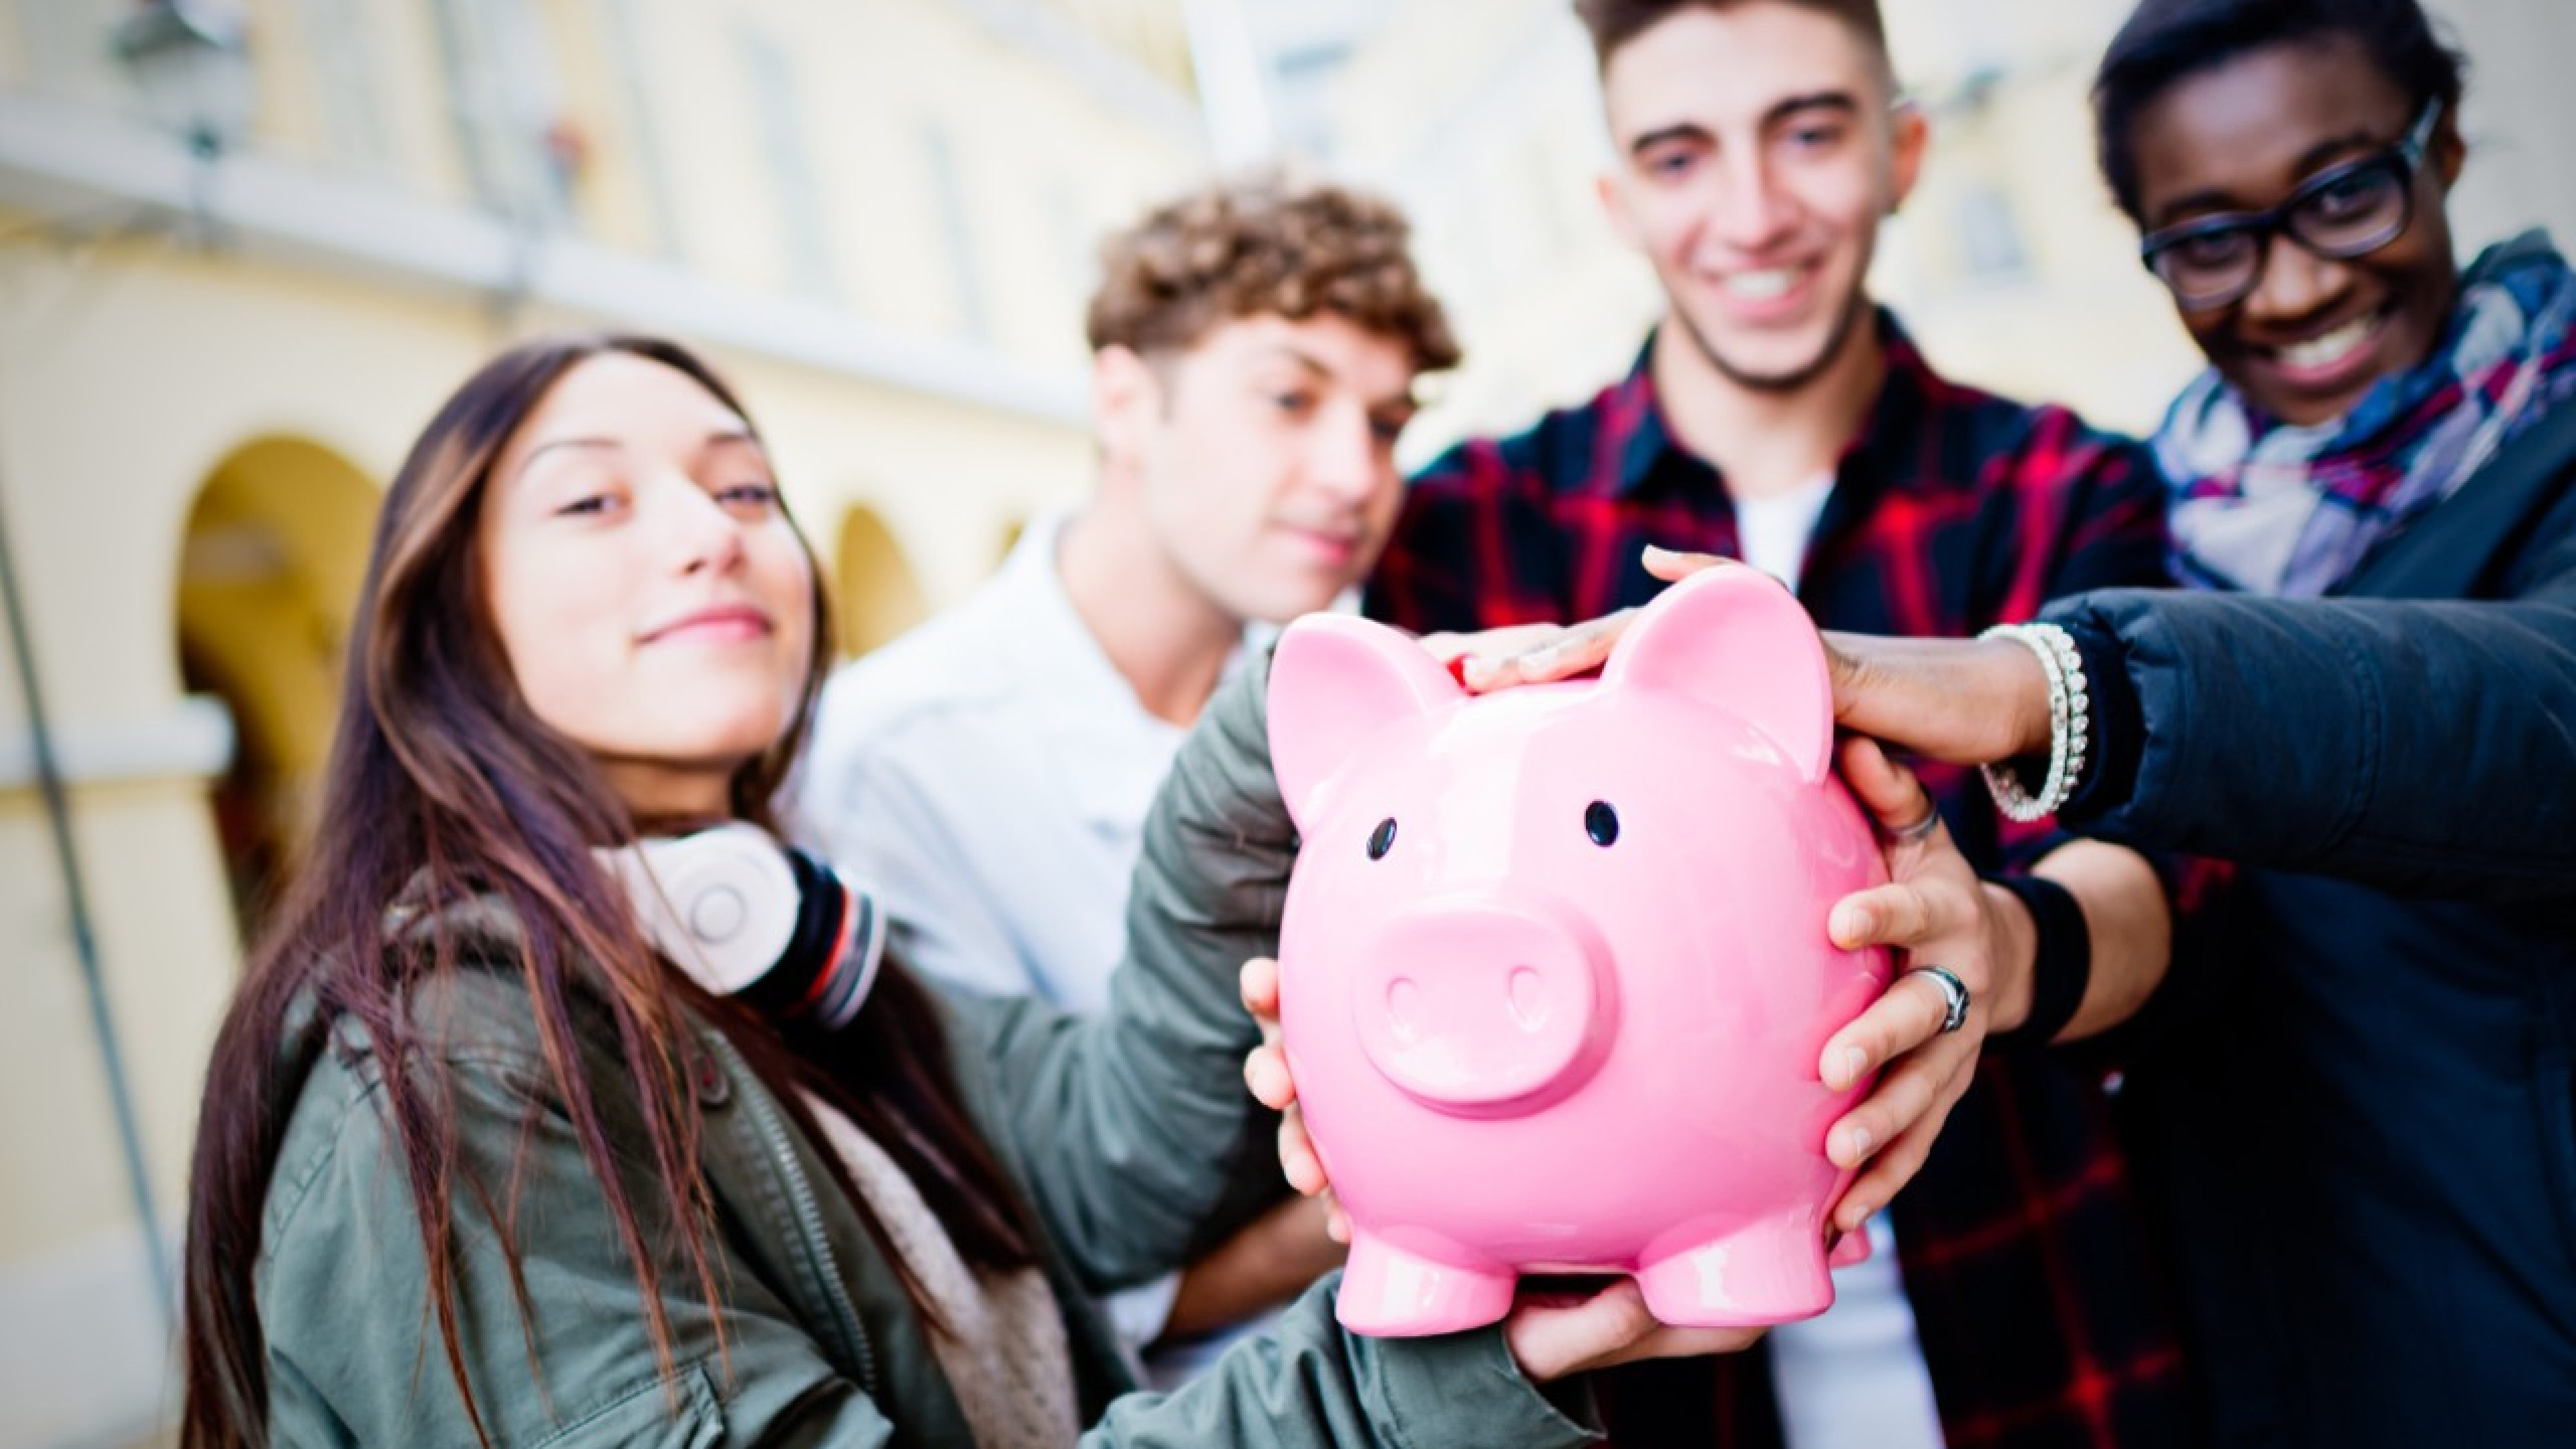 Group of mixed race people holding Piggy Bank